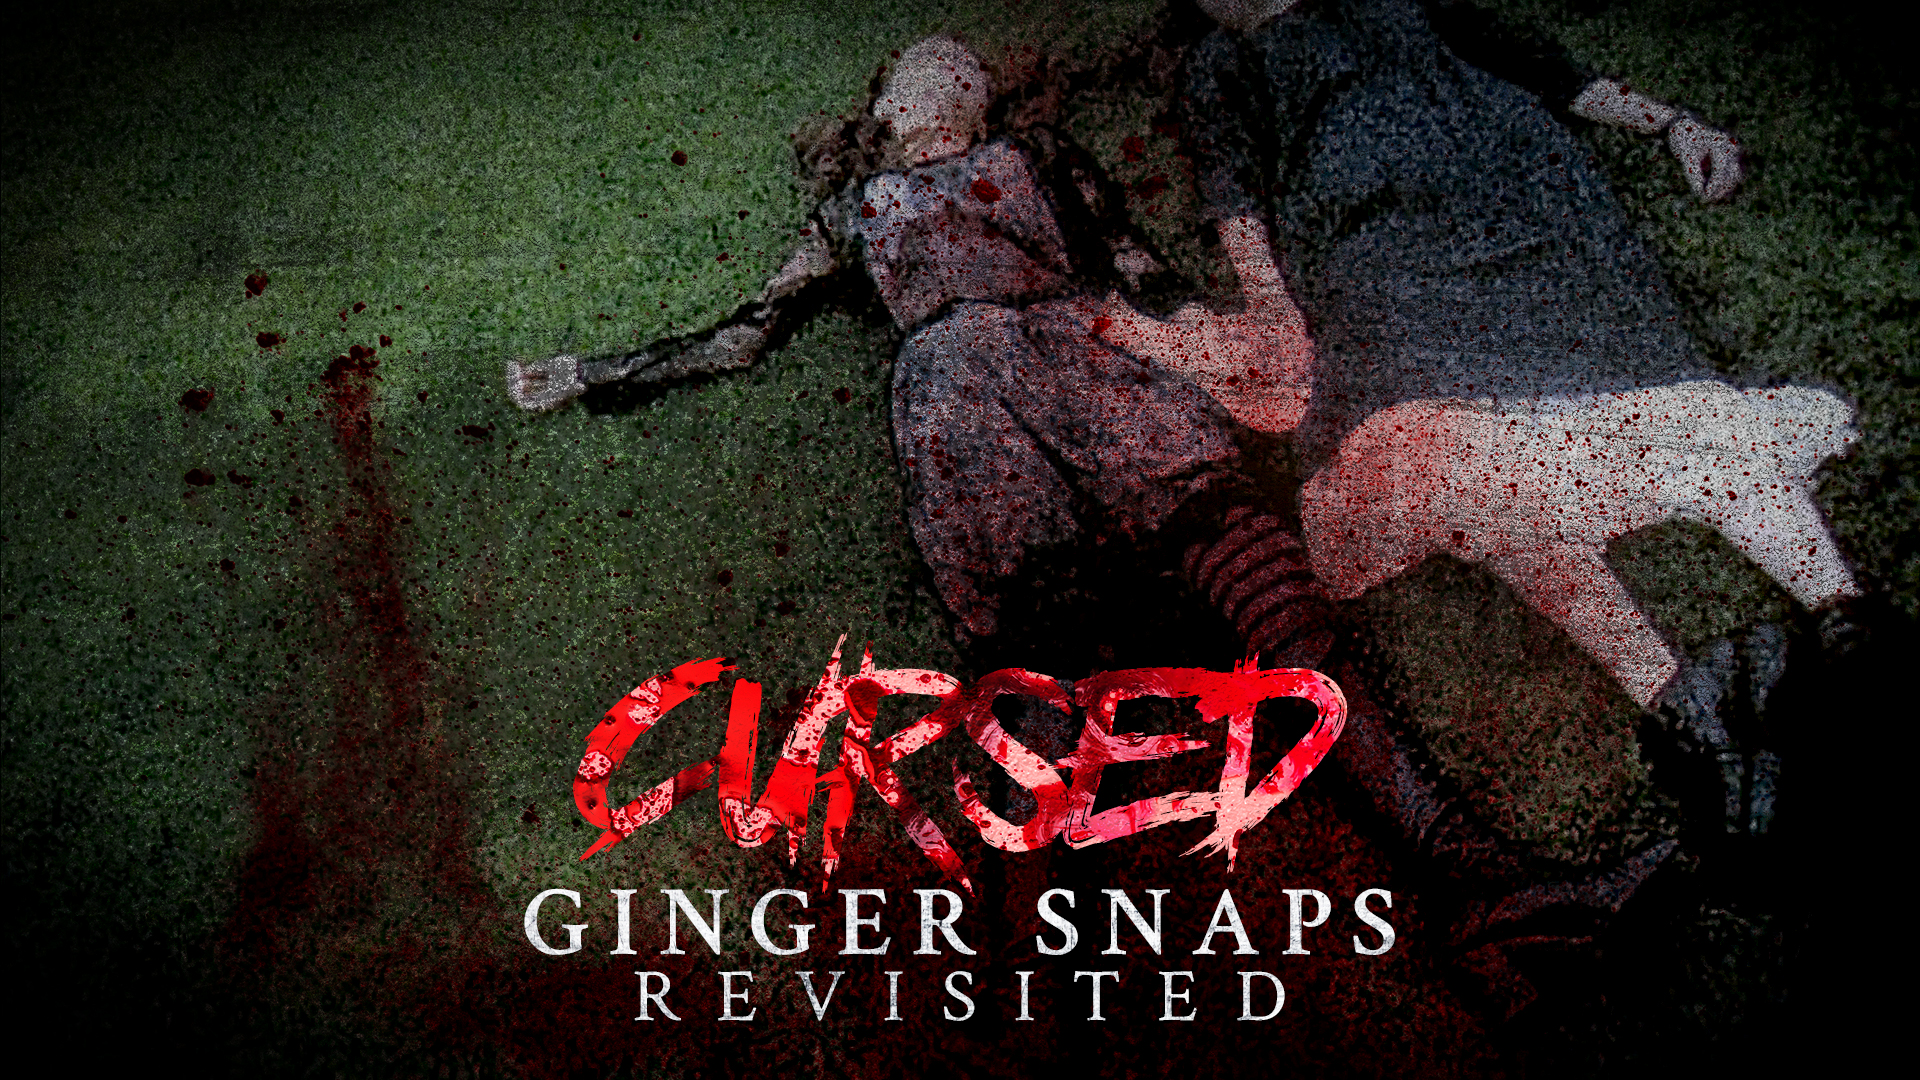 HORRORWOOD™ Presents... 'Cursed: 'Ginger Snaps' Revisited'